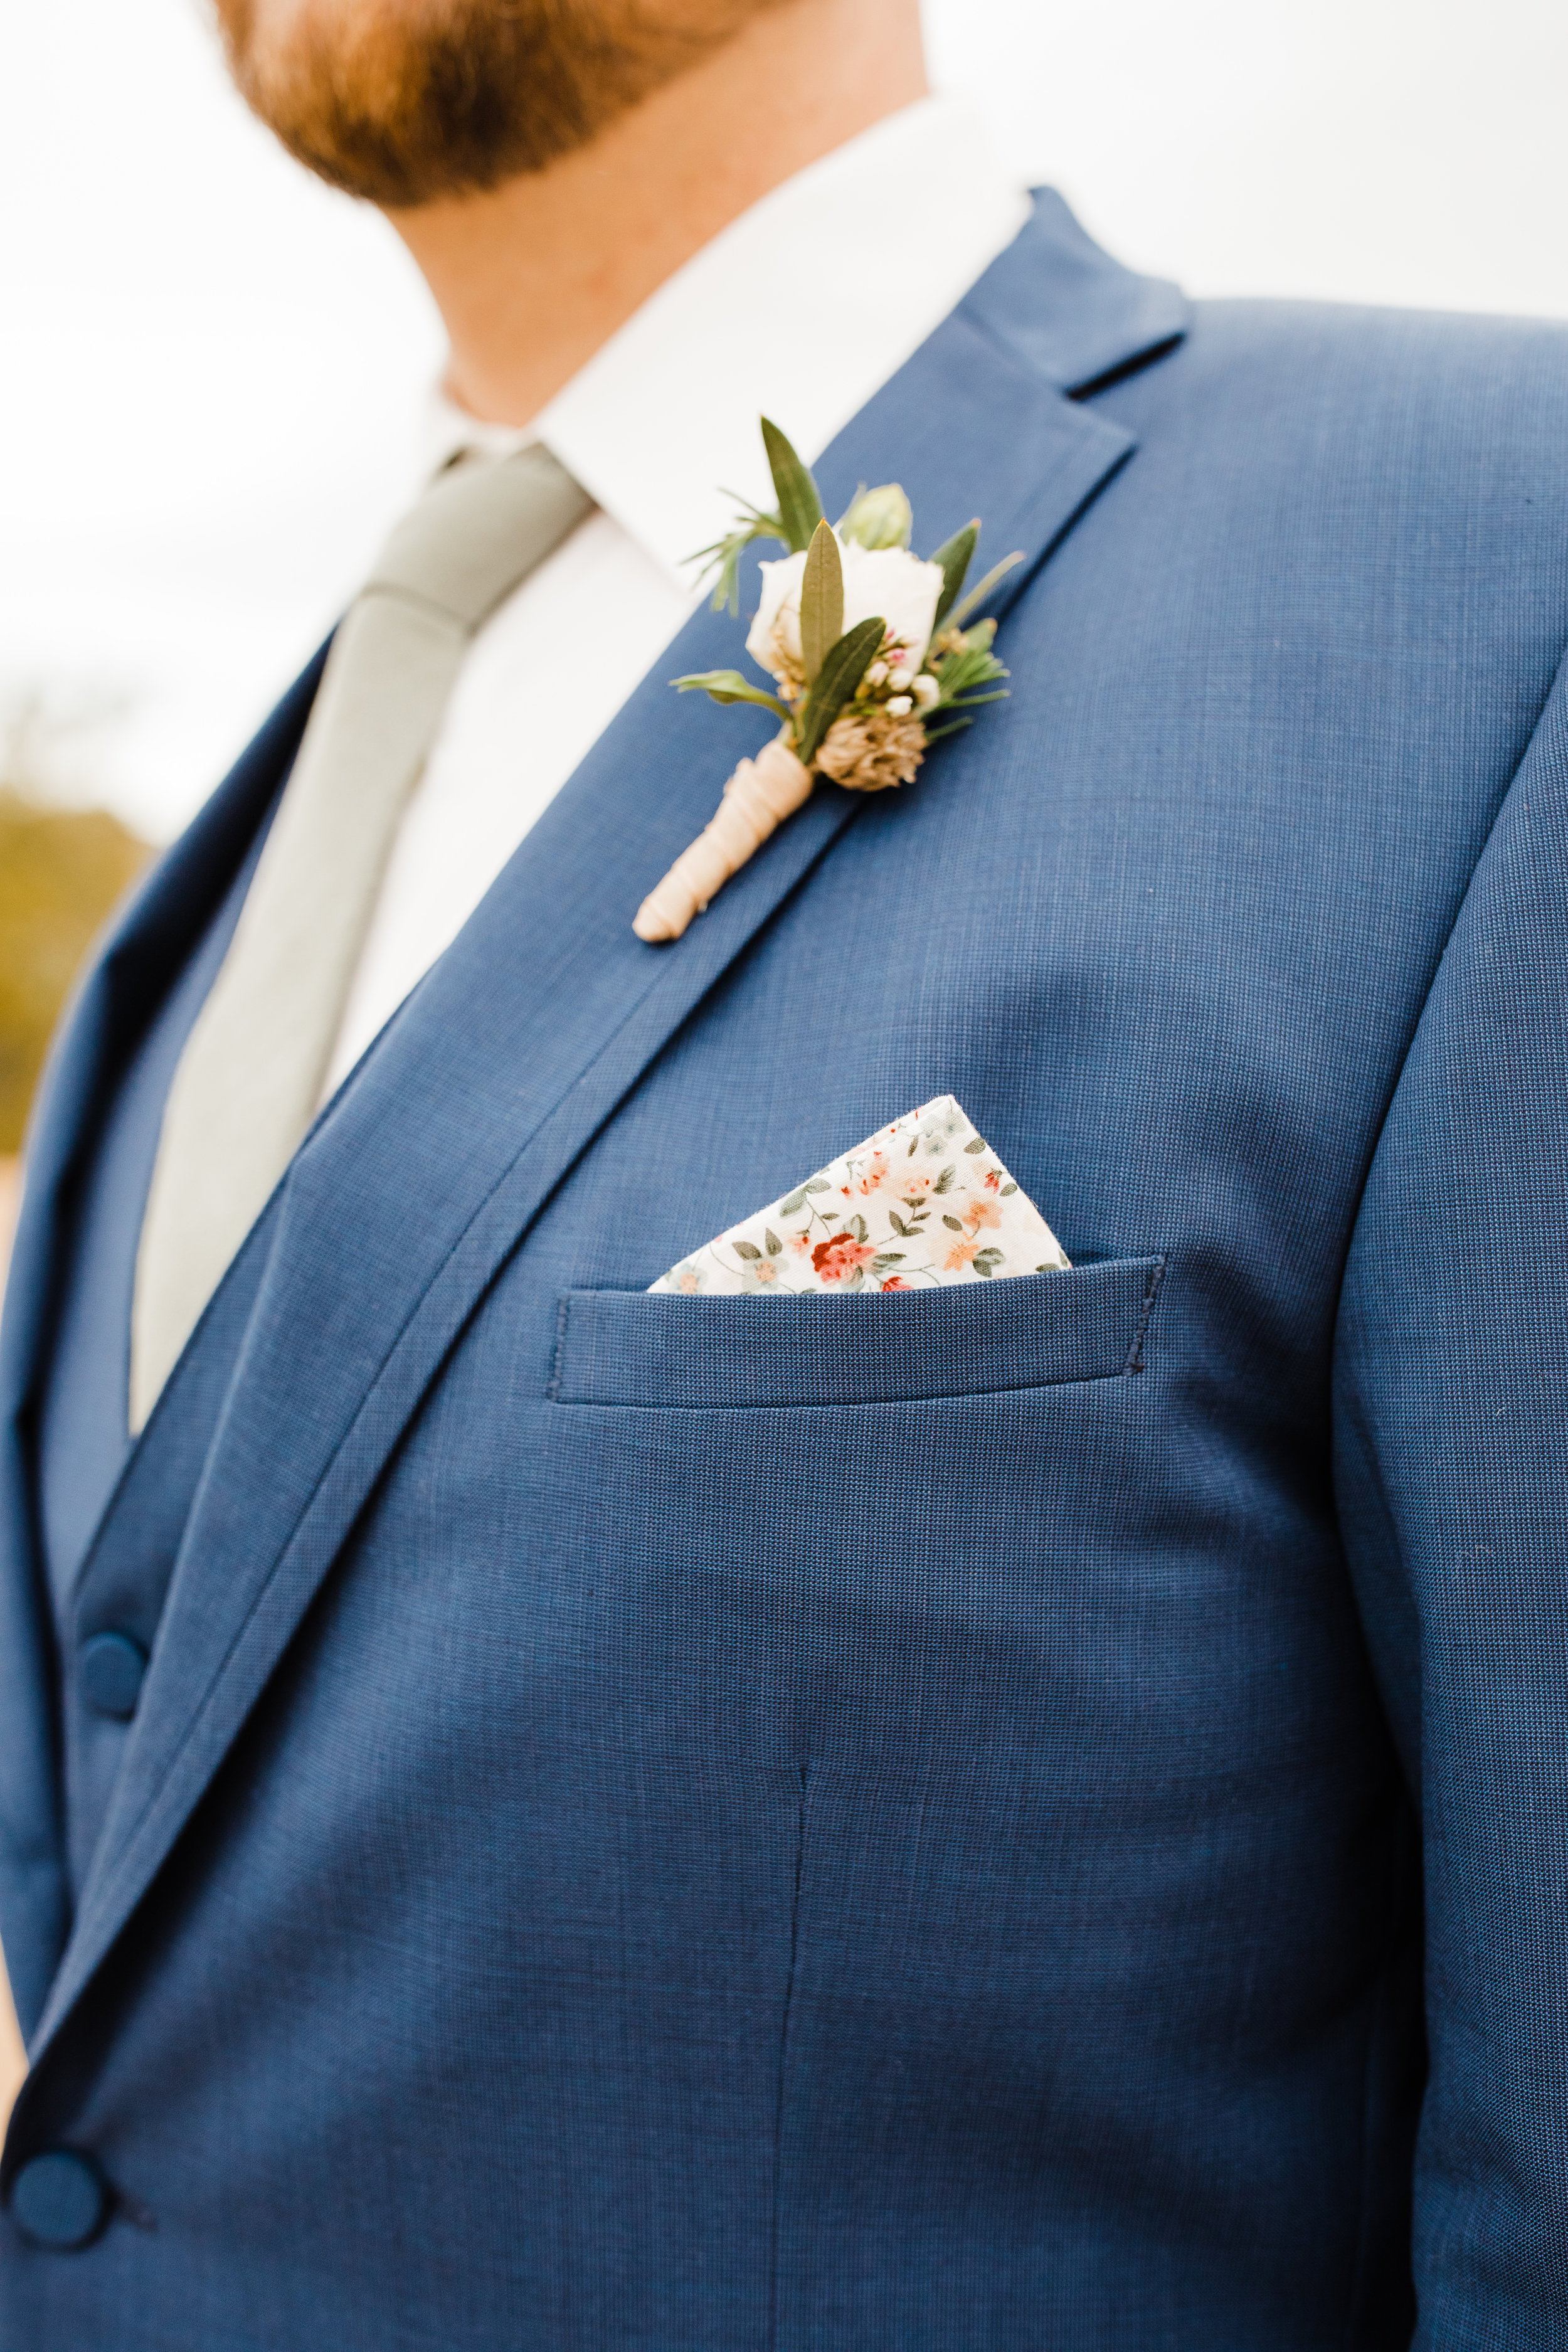 Groom's Floral Pocket Square Detail and Boutonniere. Blue Suit by Friar Tux and flowers by Pinyon Pine Floral Design.